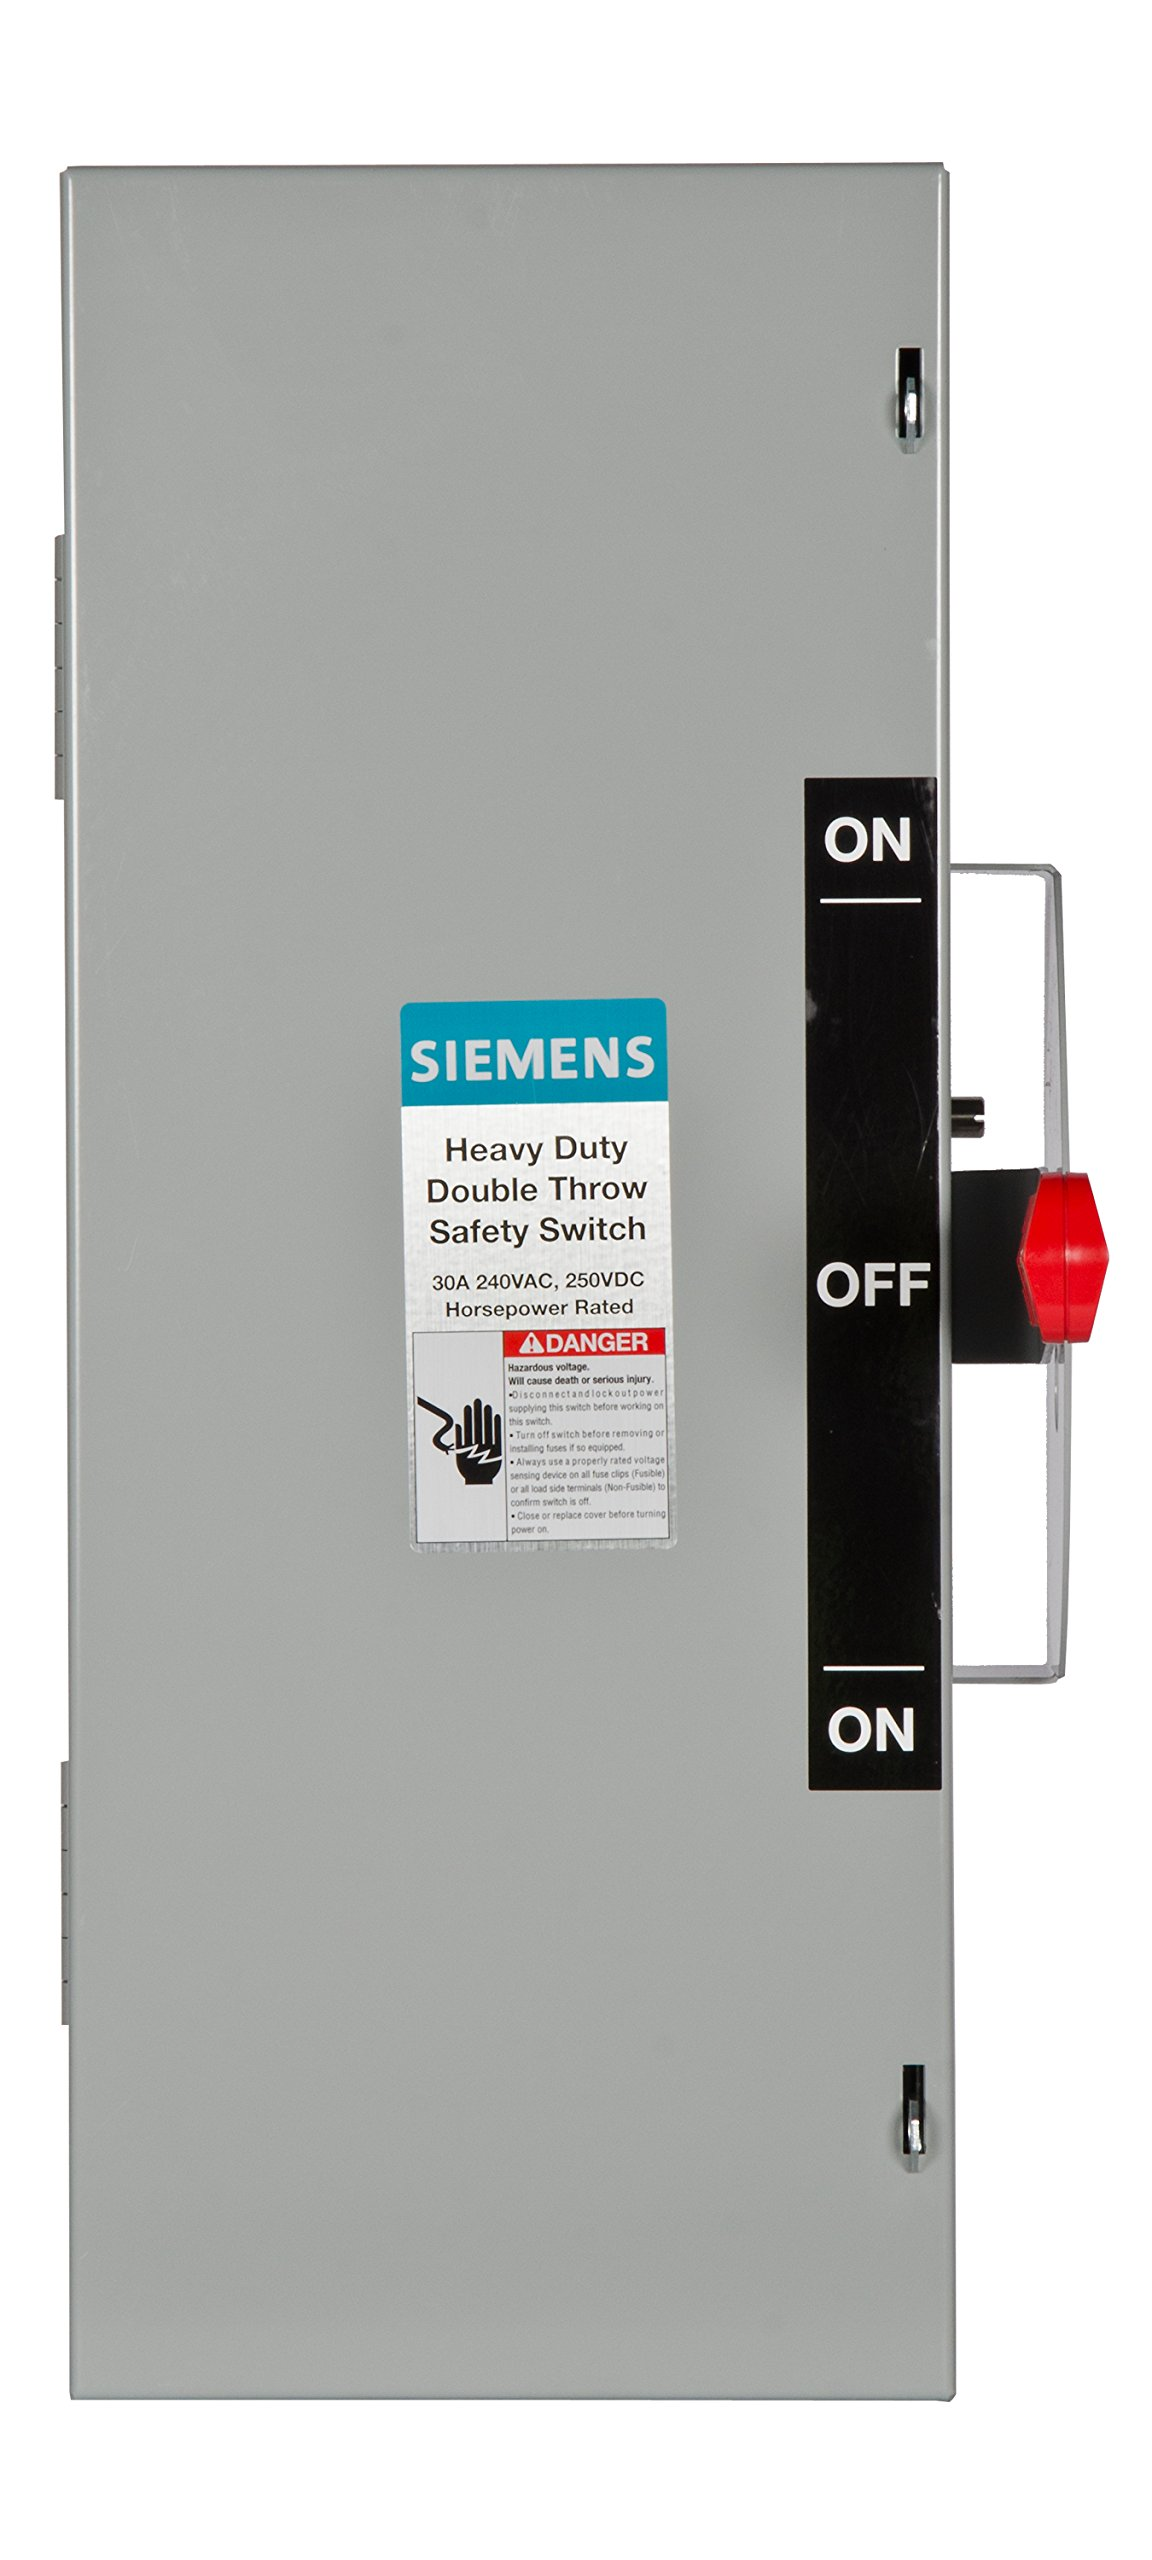 Siemens DTNF221 30-Amp 2 Pole 240-volt 2W Non-Fused Double Throw Safety Switches